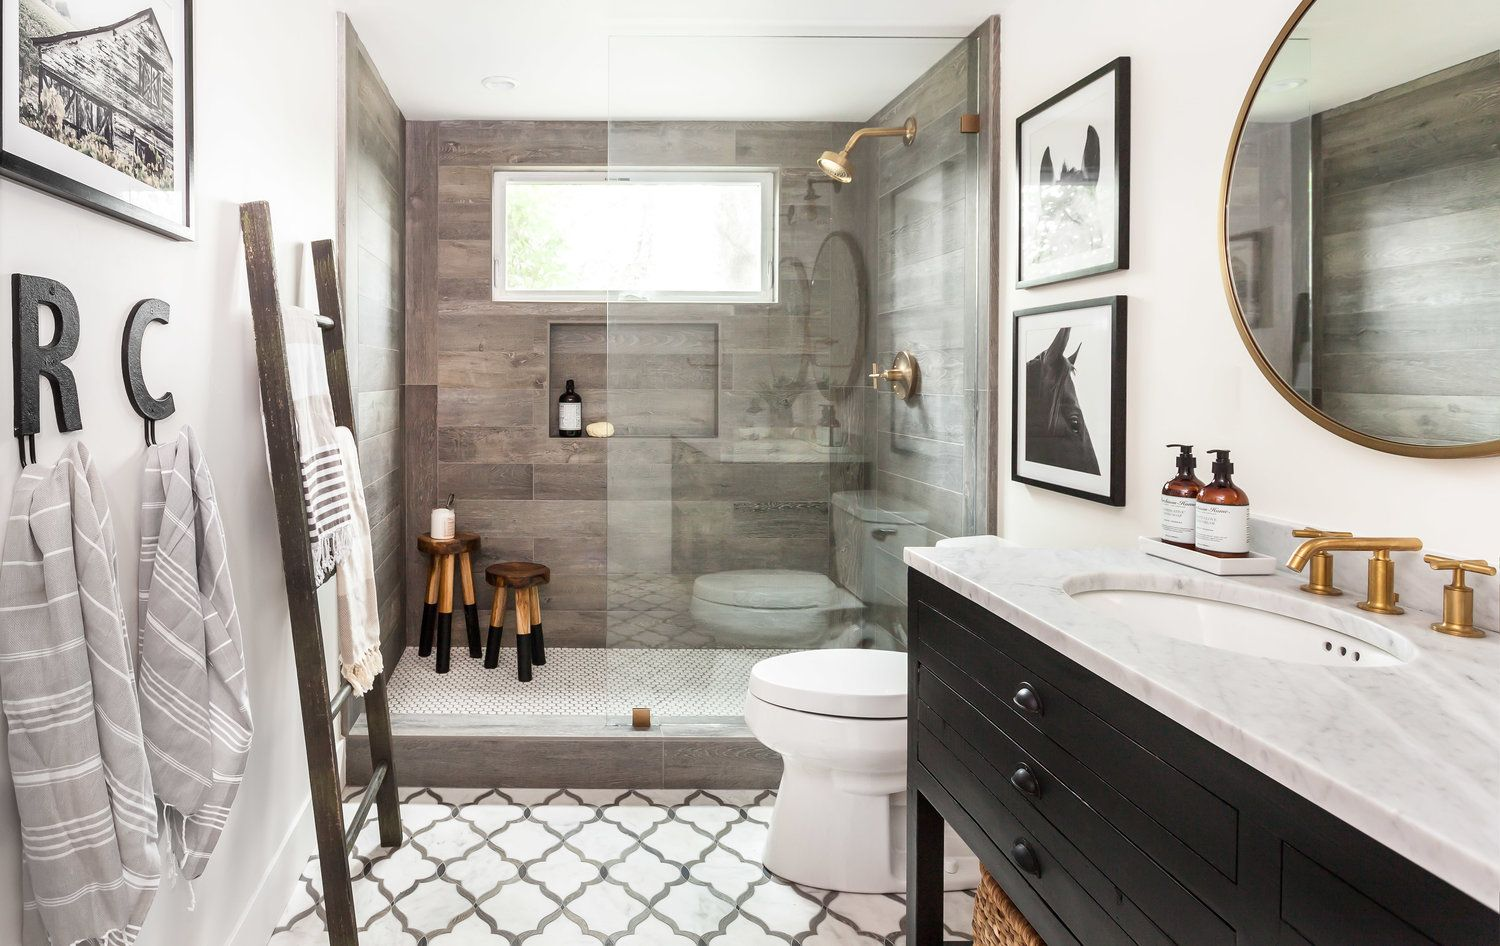 Master bedroom bathroom layout  Luxury Farm House Bathroom located in Loomis CA The shower with the